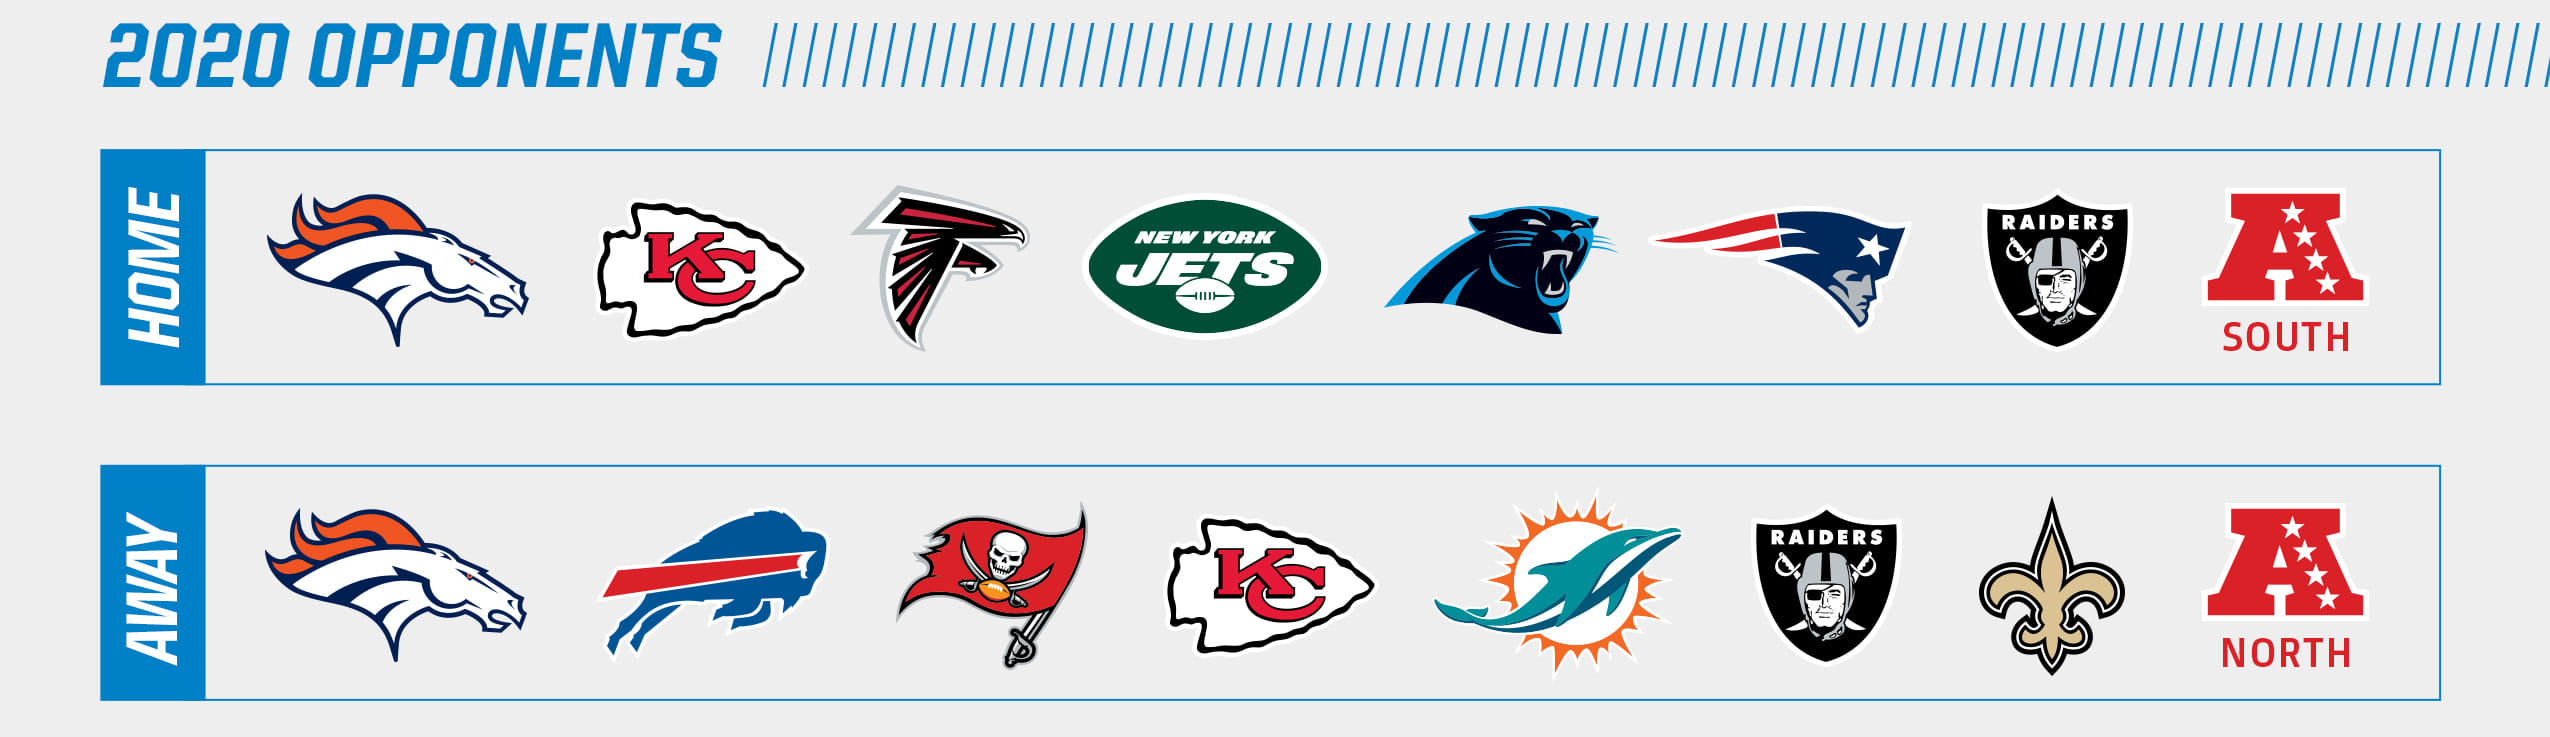 Carolina Panthers Schedule 2020.Chargers Future Opponents Los Angeles Chargers Chargers Com